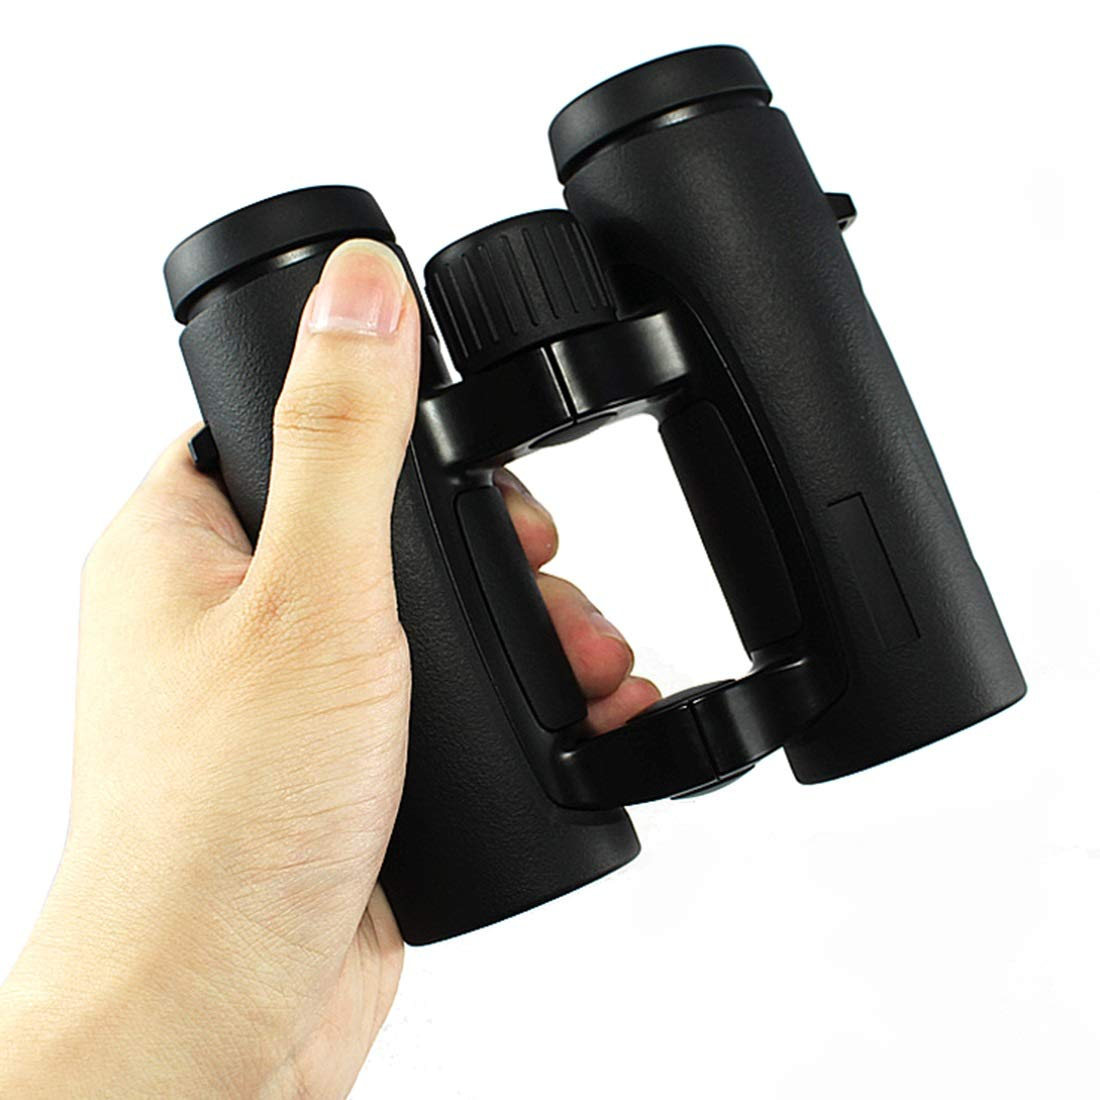 ZGQA-GQA 10x32 Small Compact Binoculars for Concert Sports Pocket Folding Binoculars for Adults Kids for Adult by ZGQA-GQA